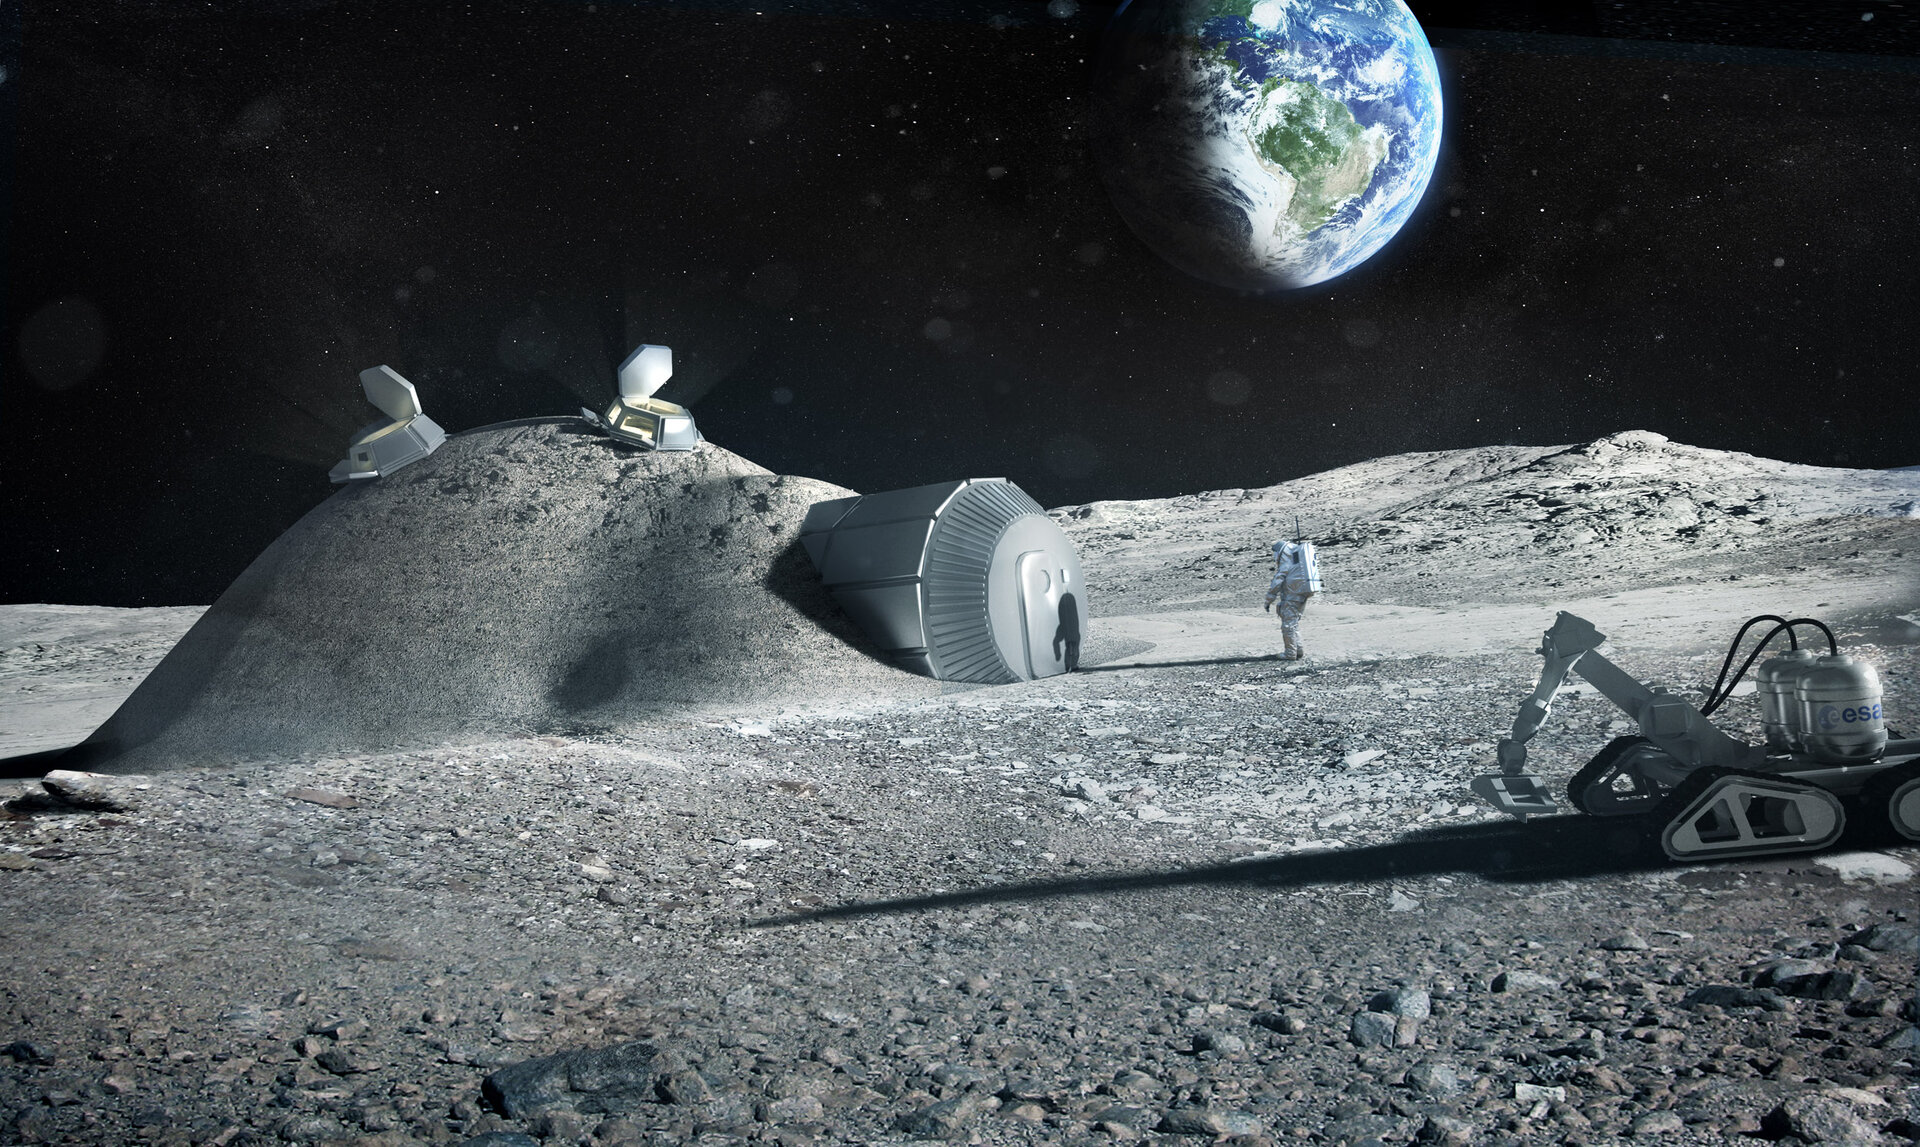 Design for a 3D-printed lunar base.